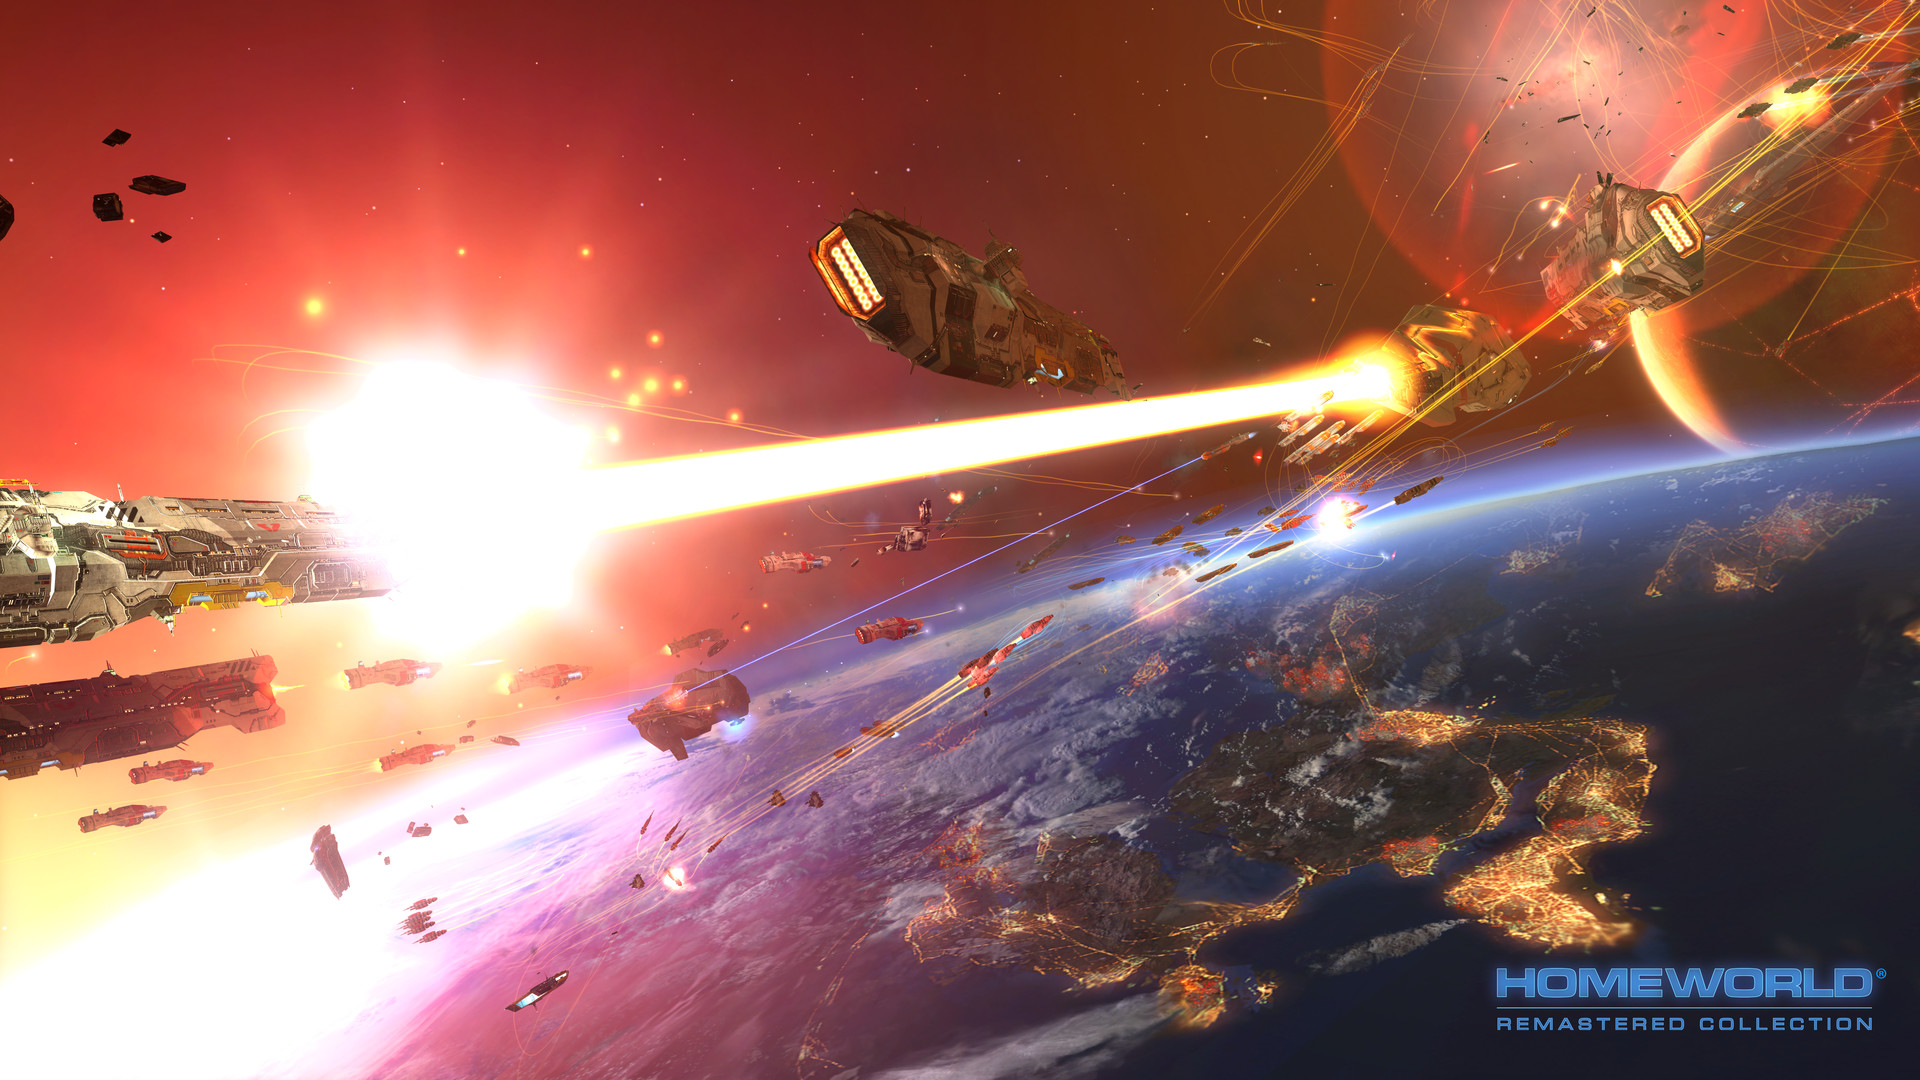 Today's Best iOS & Mac App Deals: Homeworld Collection, Boxing Manager, more